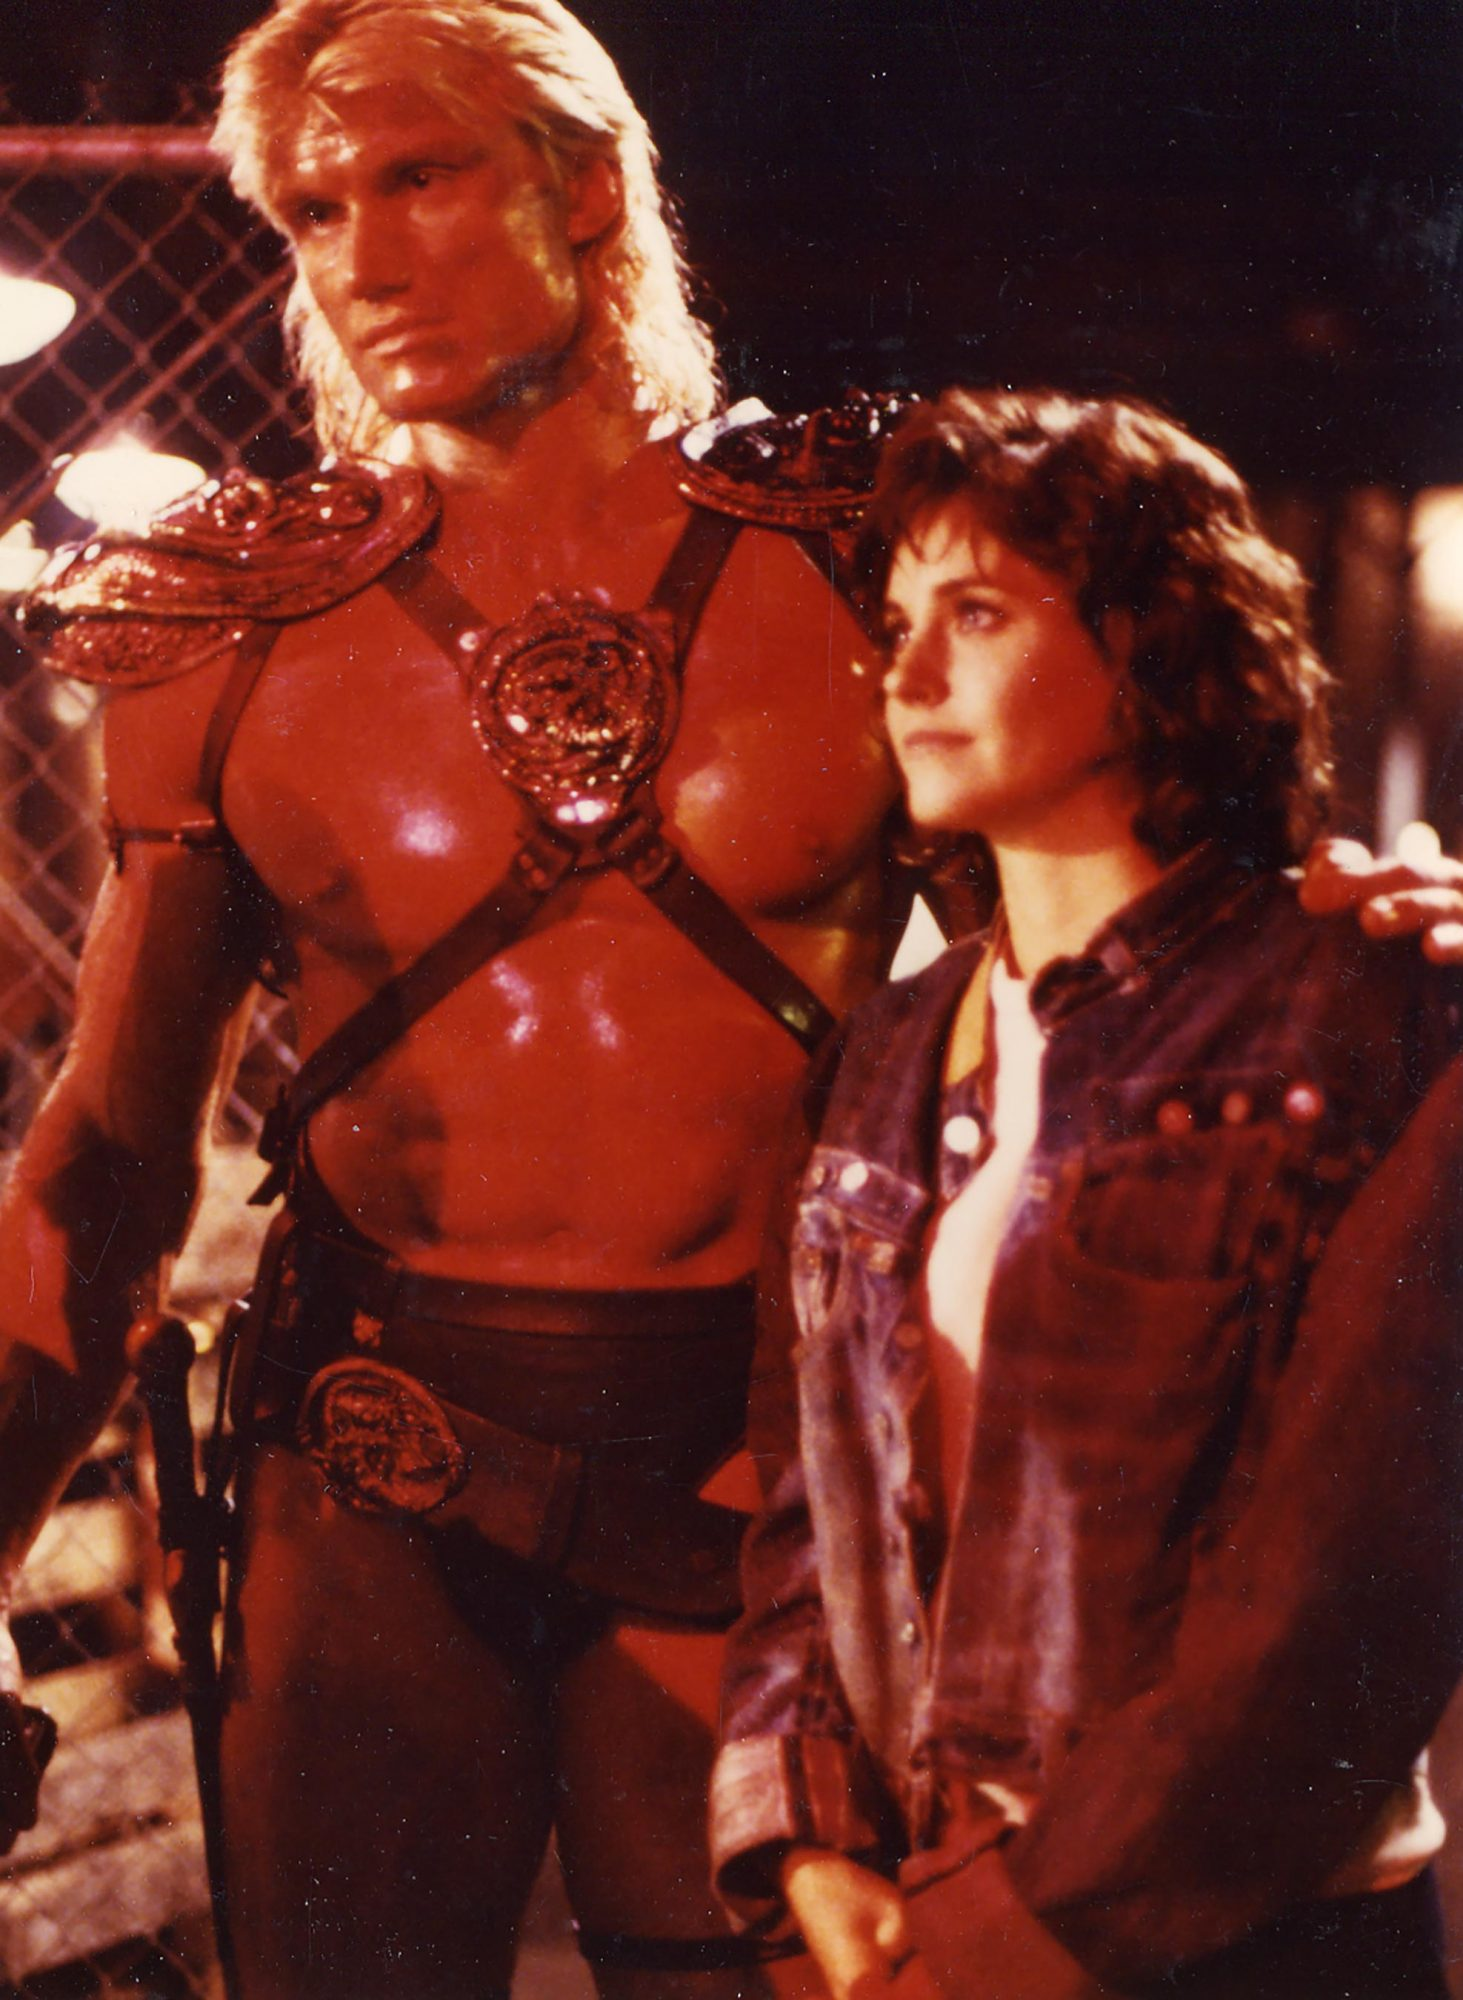 MASTERS OF THE UNIVERSE CR: Cannon Films